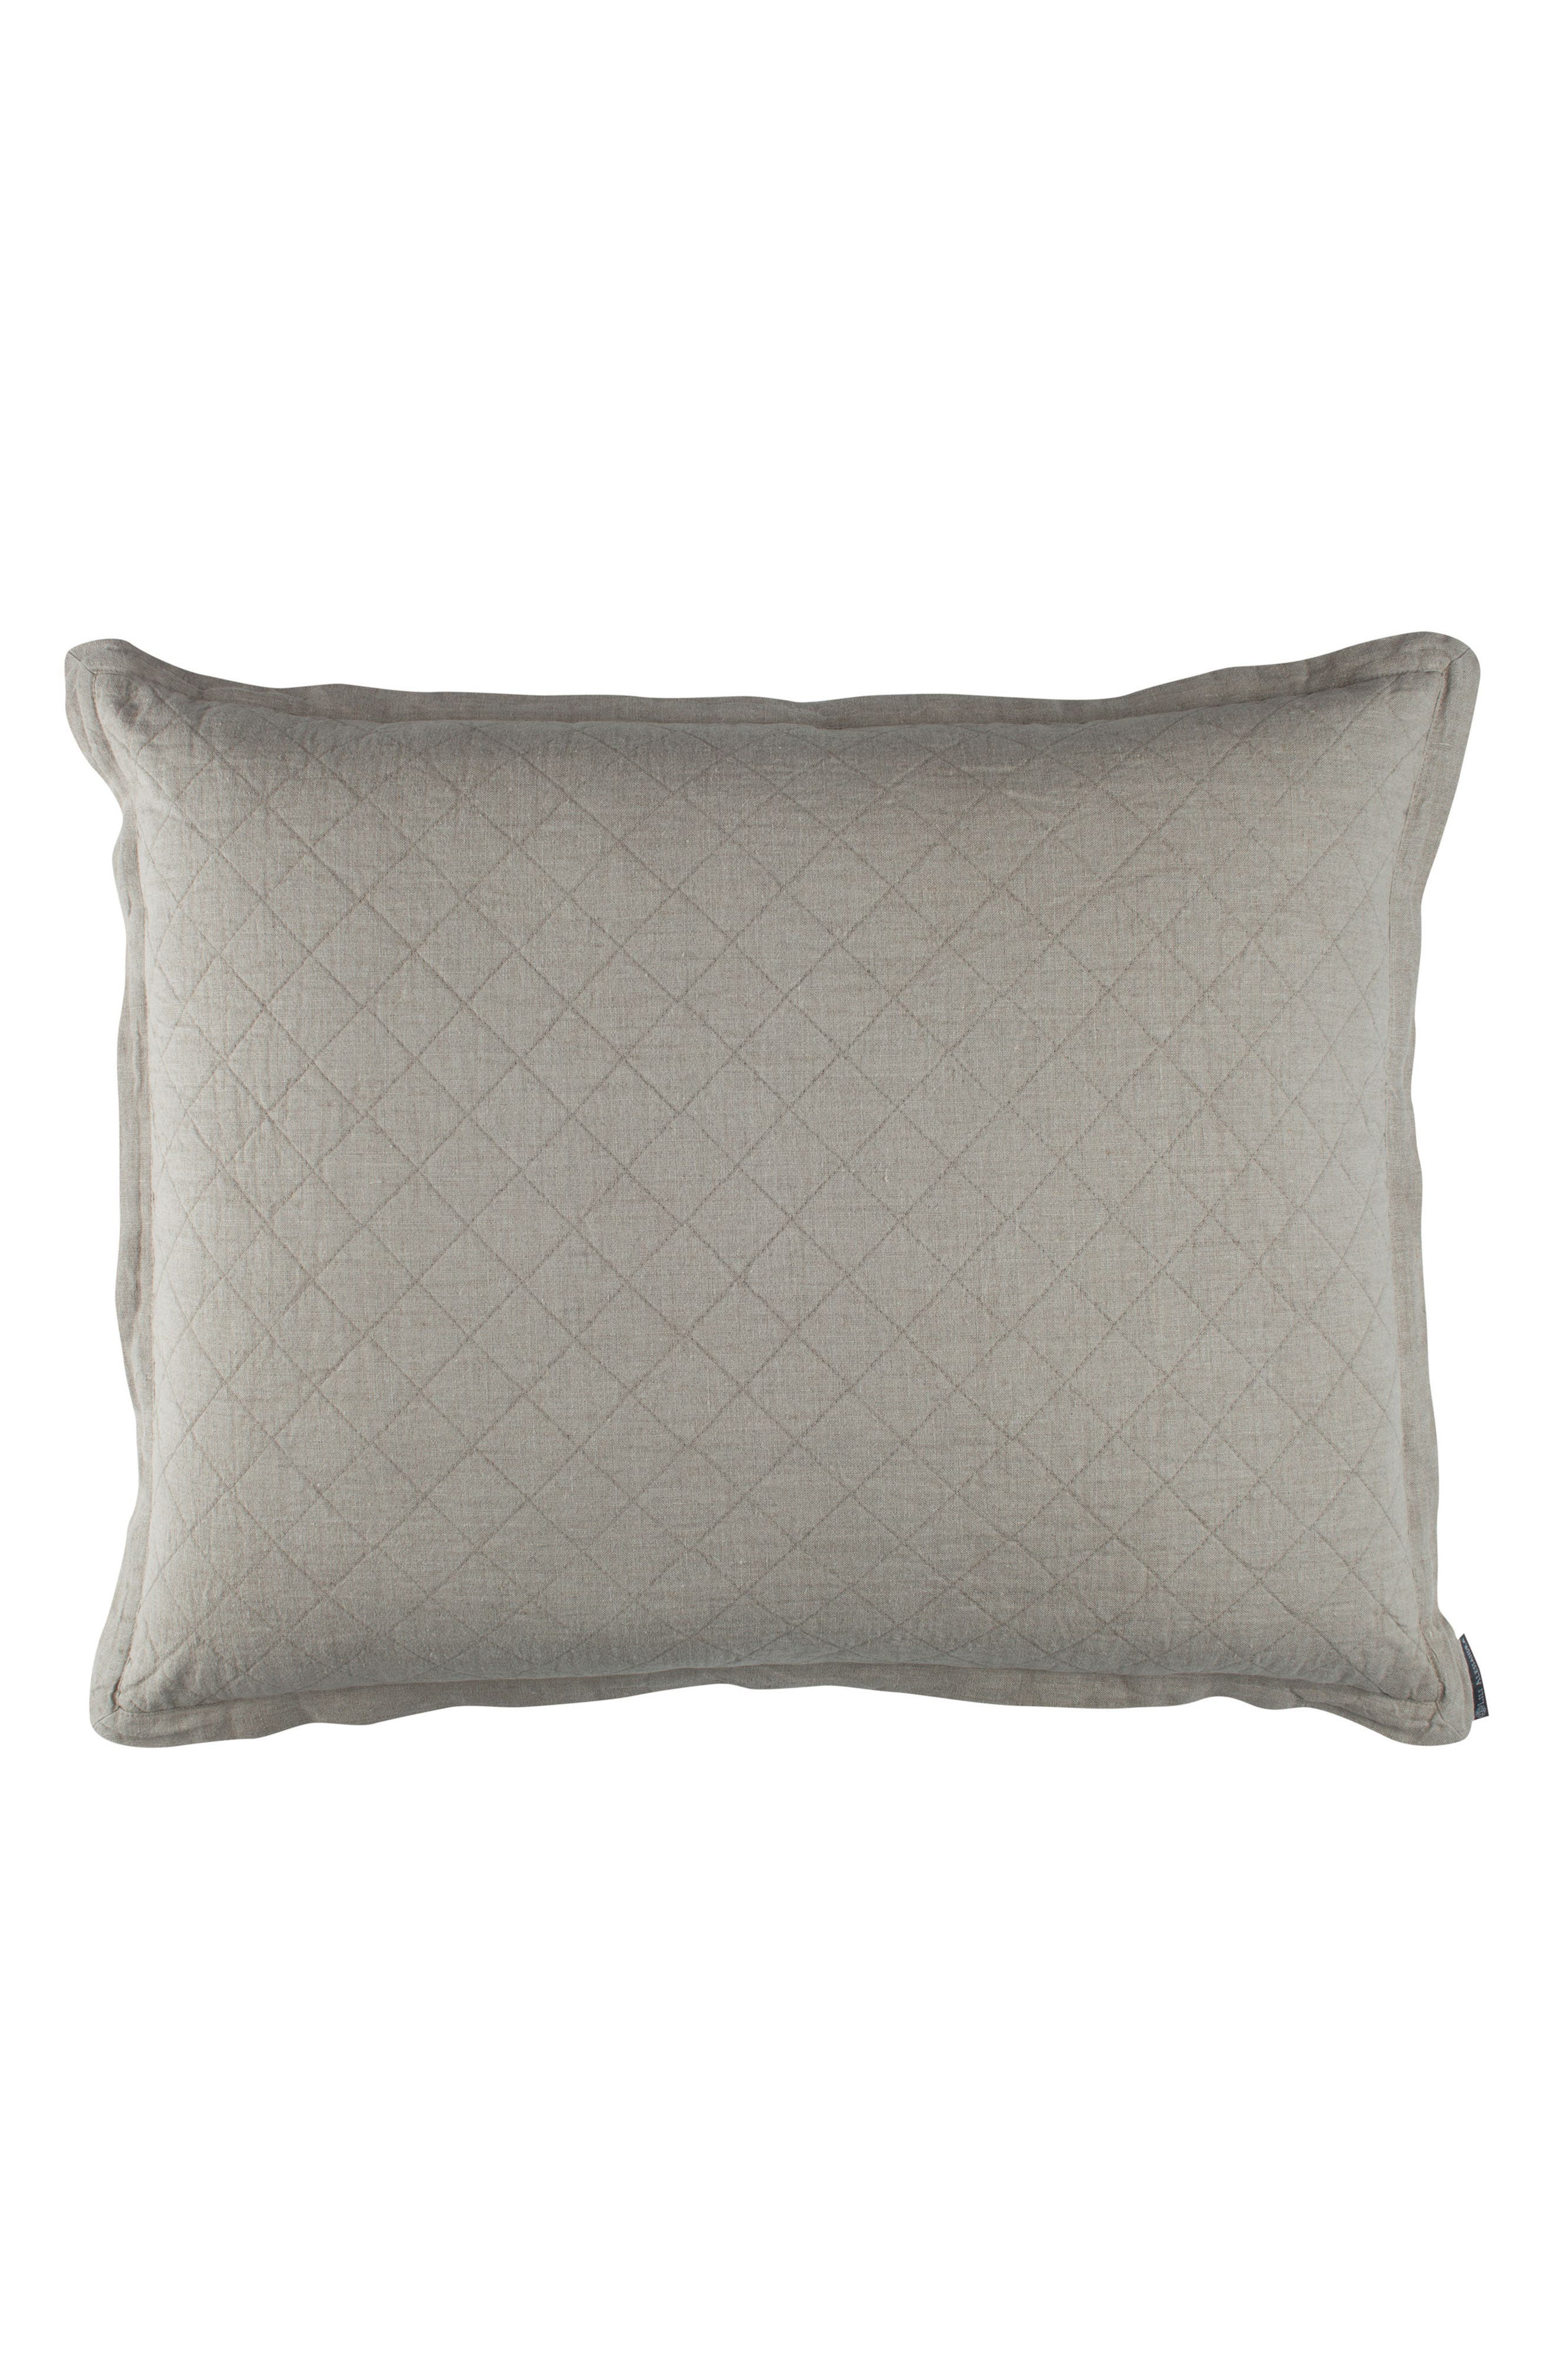 Emily Diamond Quilted Sham,                             Main thumbnail 1, color,                             020